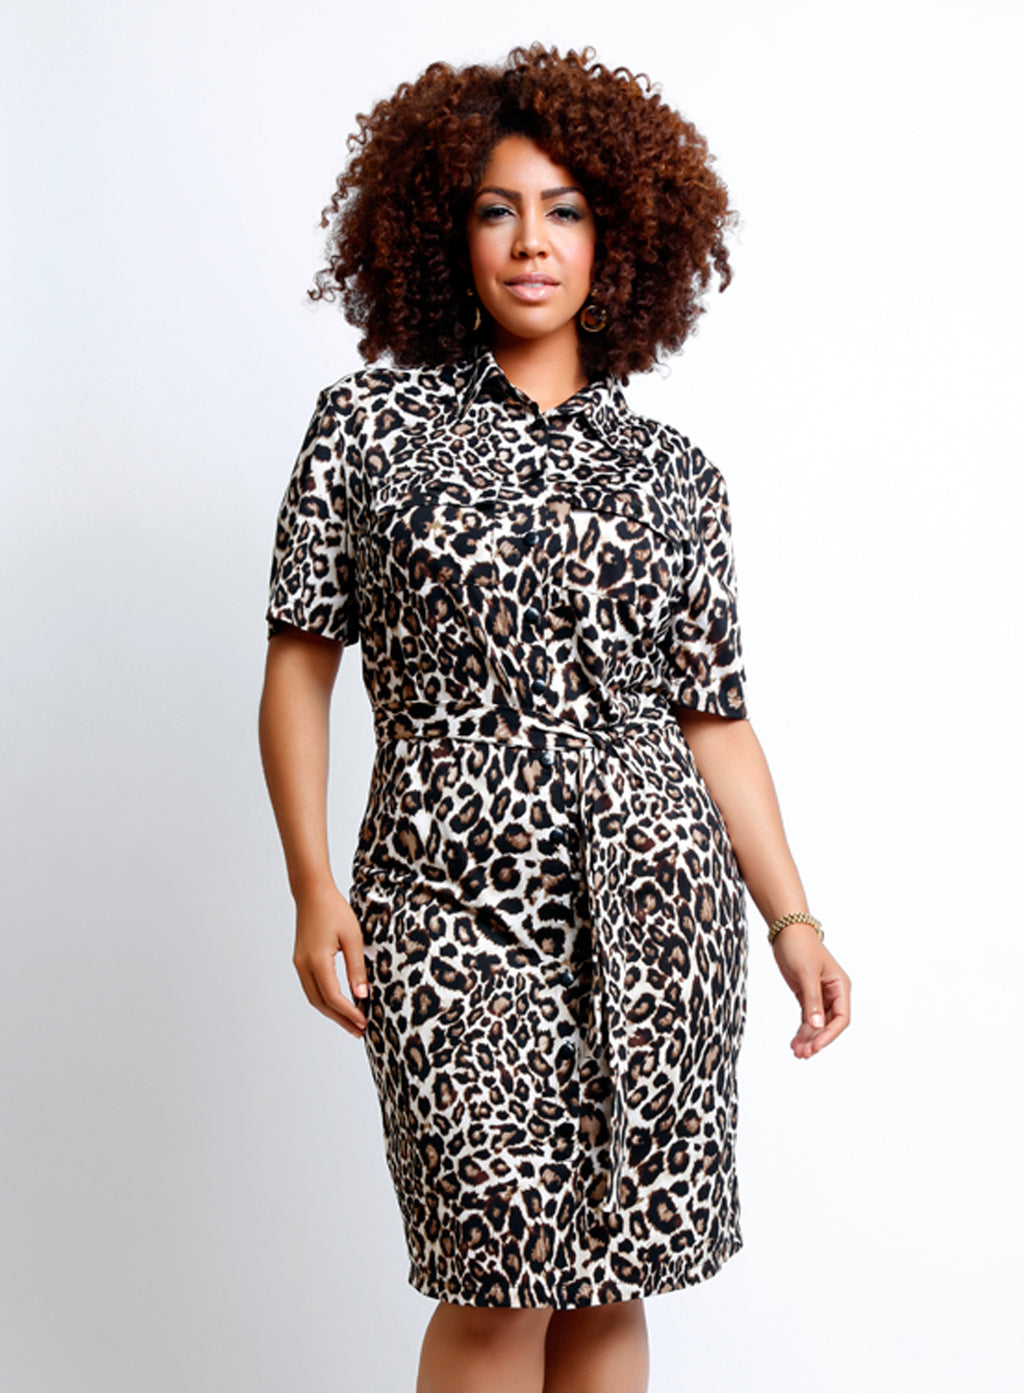 CURVY BUTTON FRONT PLUS SIZE SHIRT DRESS WITH SLEEVES IN LEOPARD PRINT